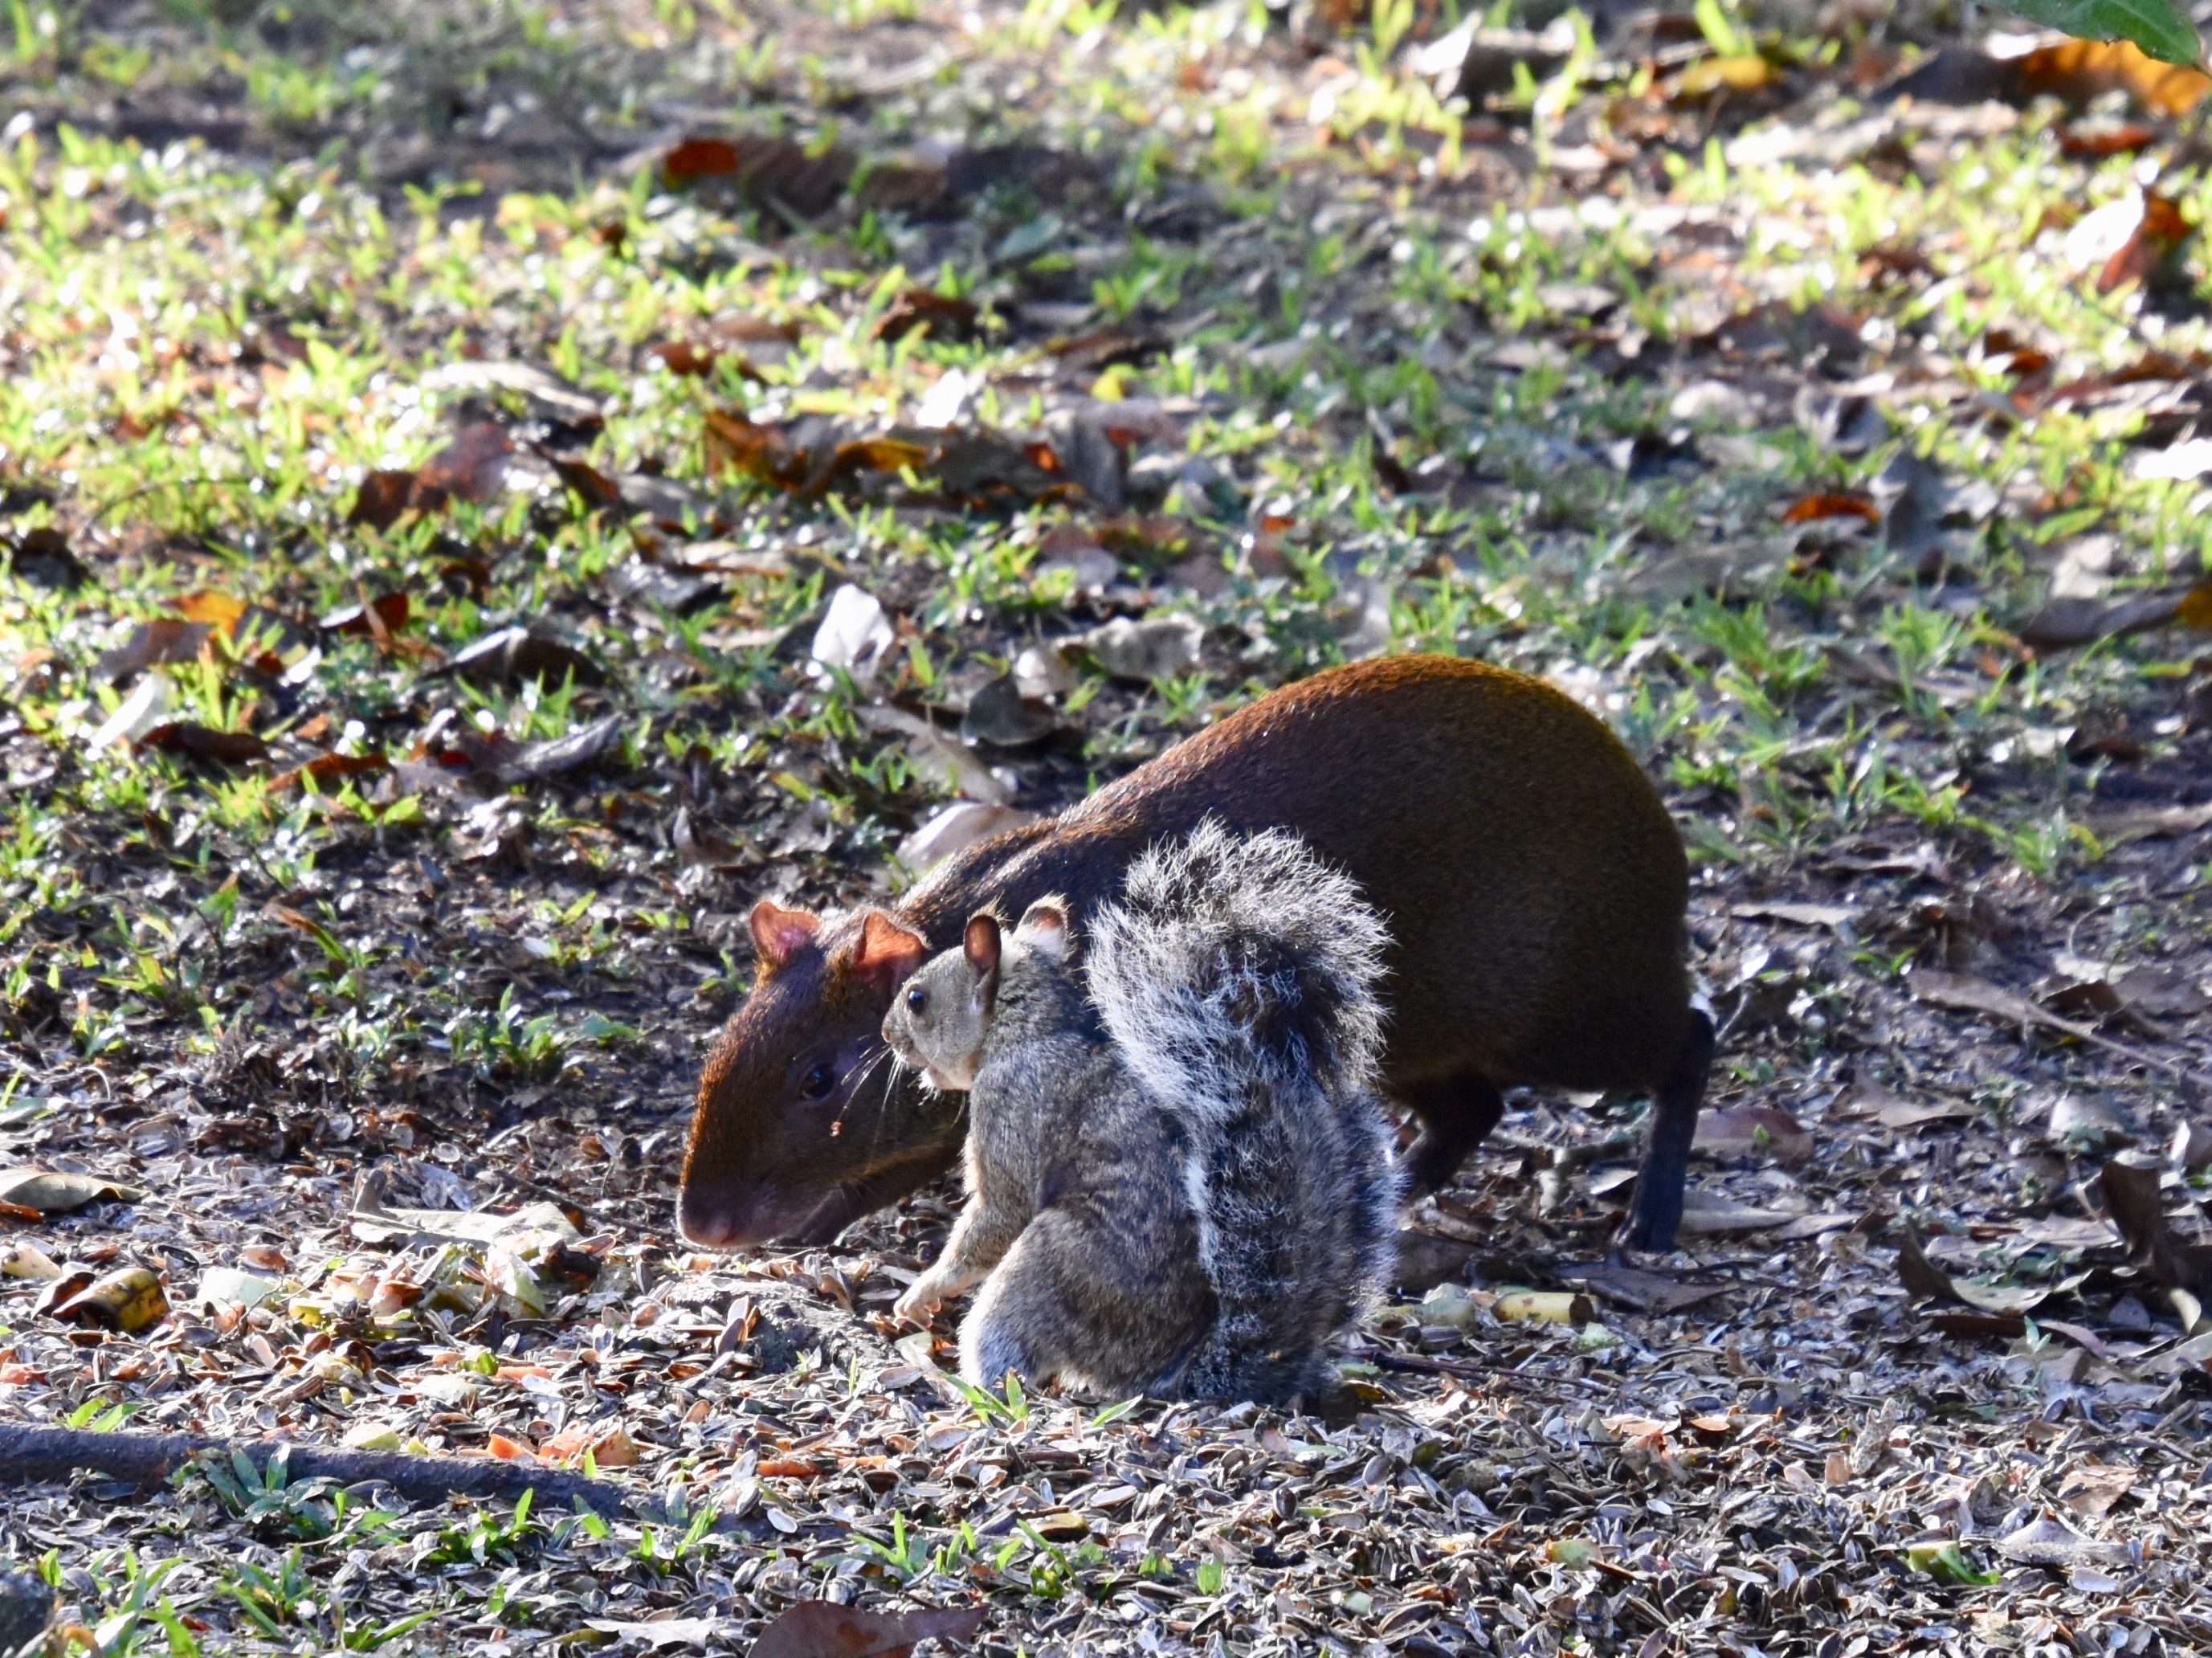 Agouti & Squirrel, Copan